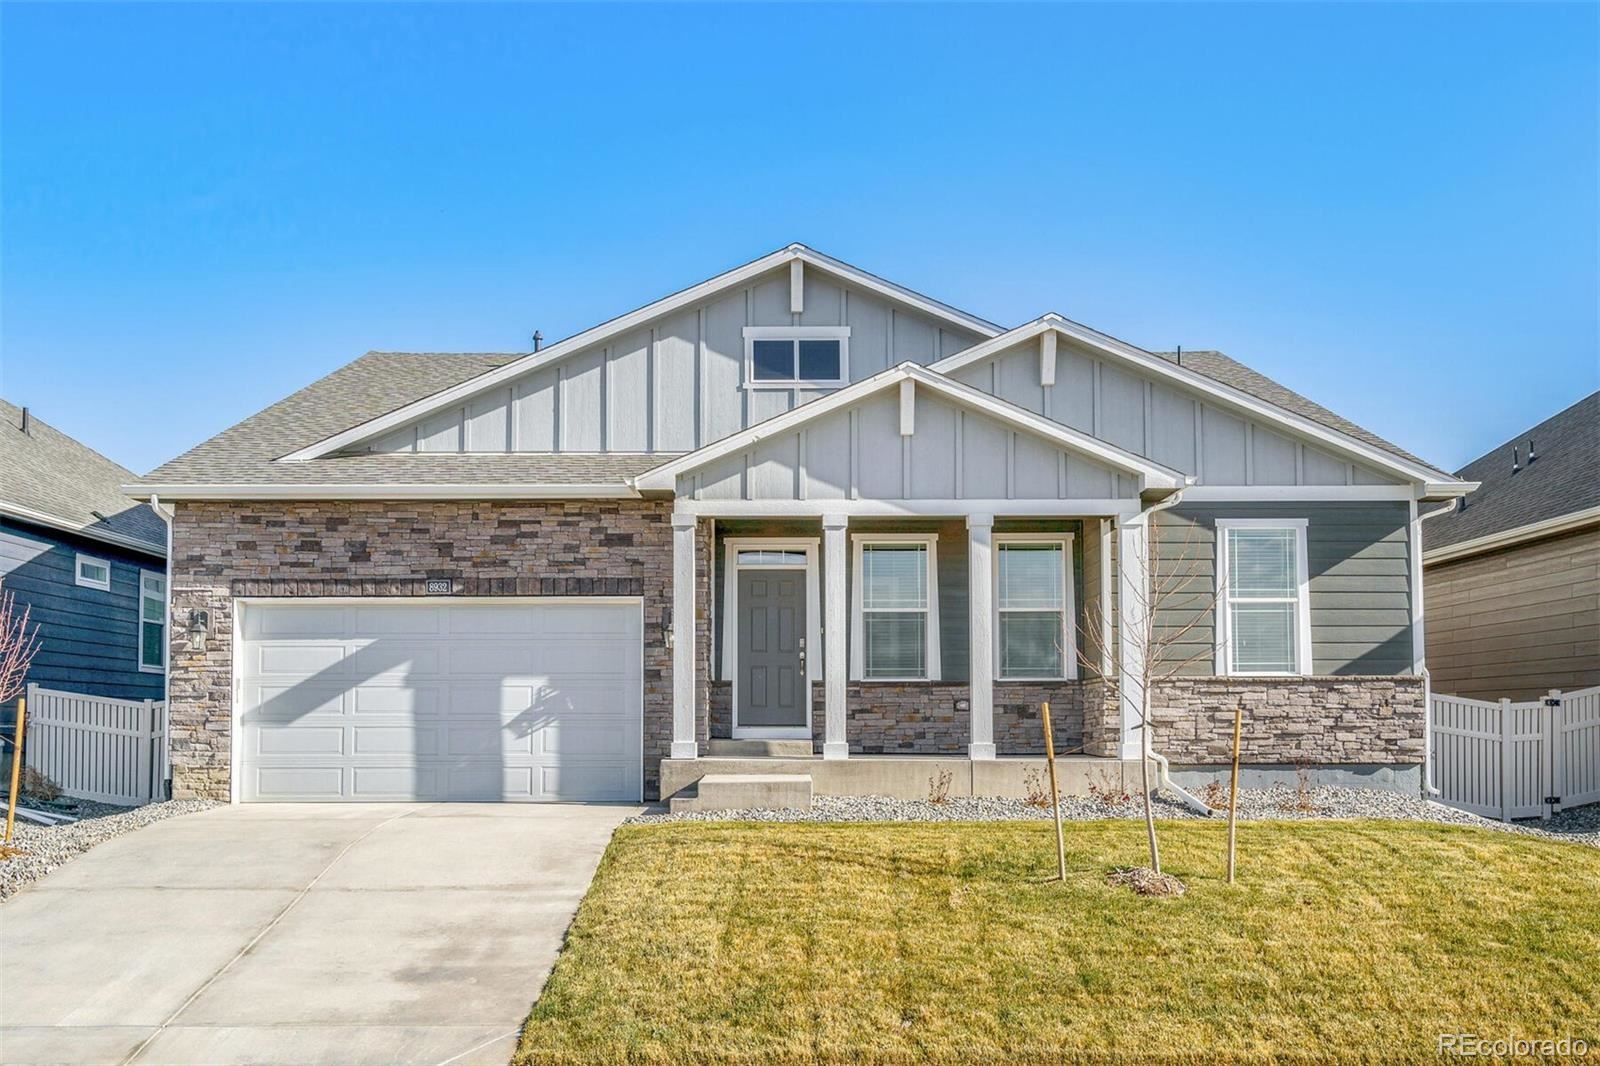 8877 Ferncrest Street, Firestone, CO 80504 - MLS#: 4854393